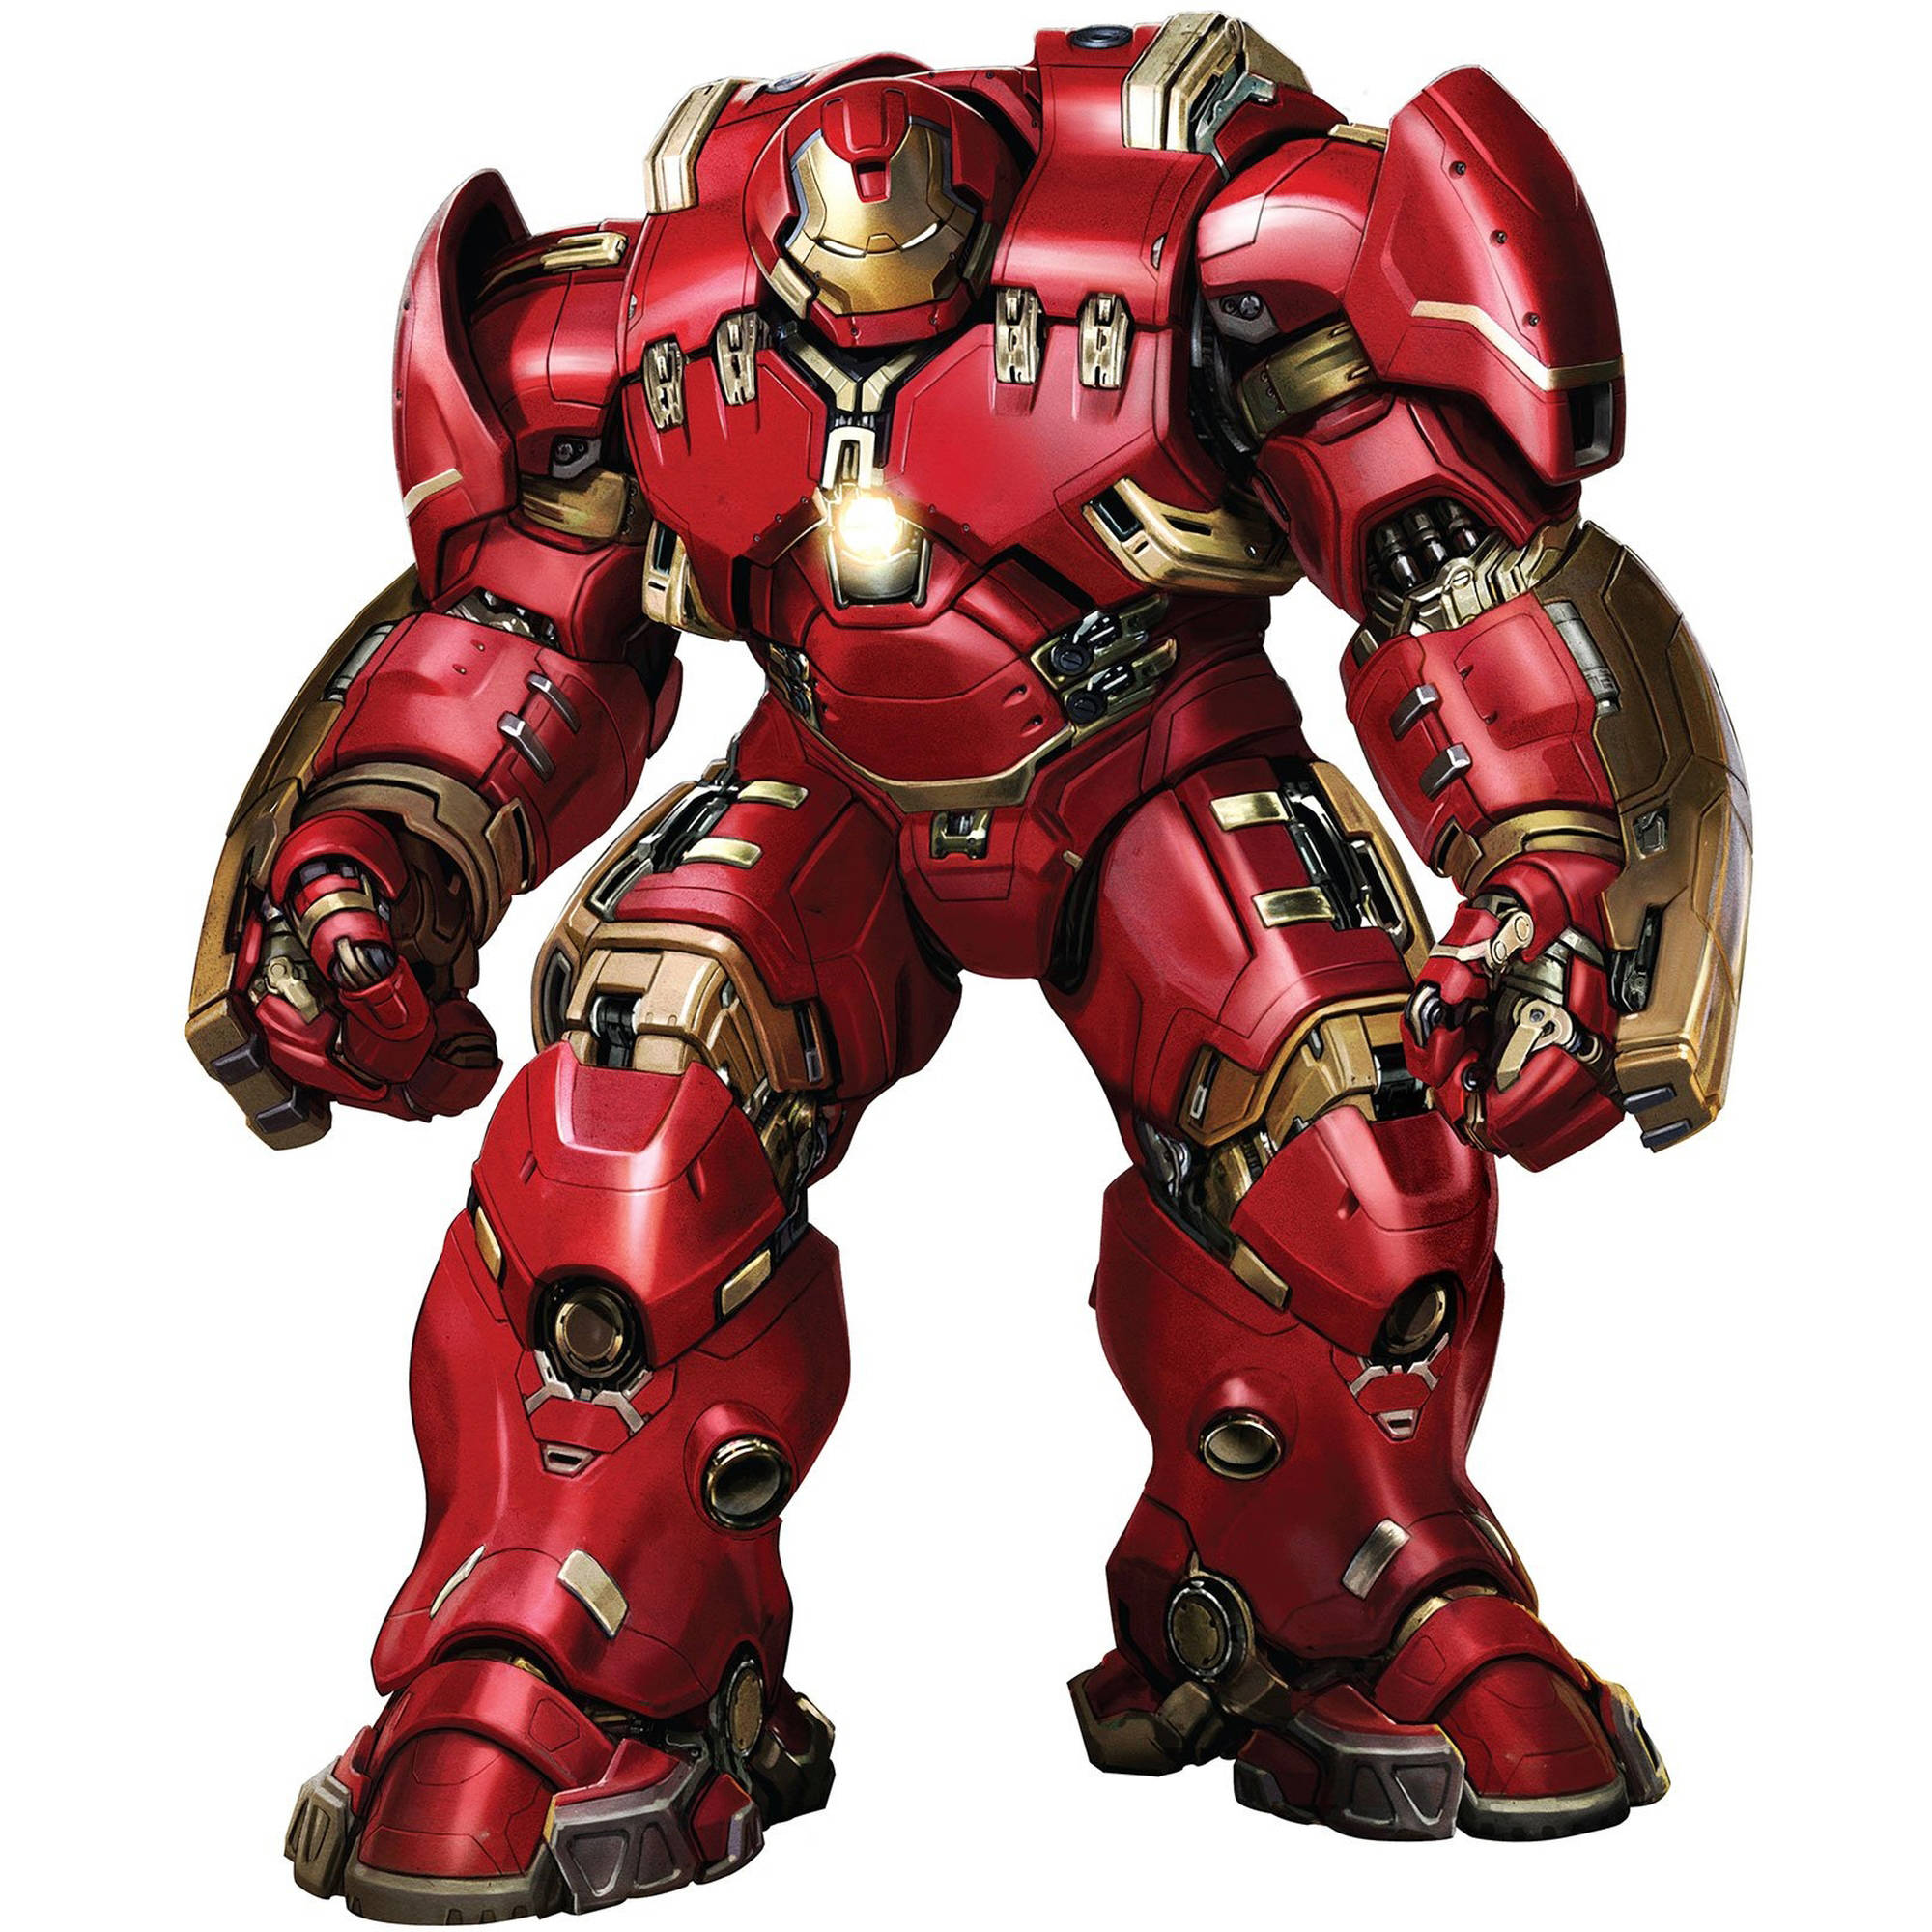 Marvel Avengers Age of Ultron Hulkbuster Standup, 6' Tall